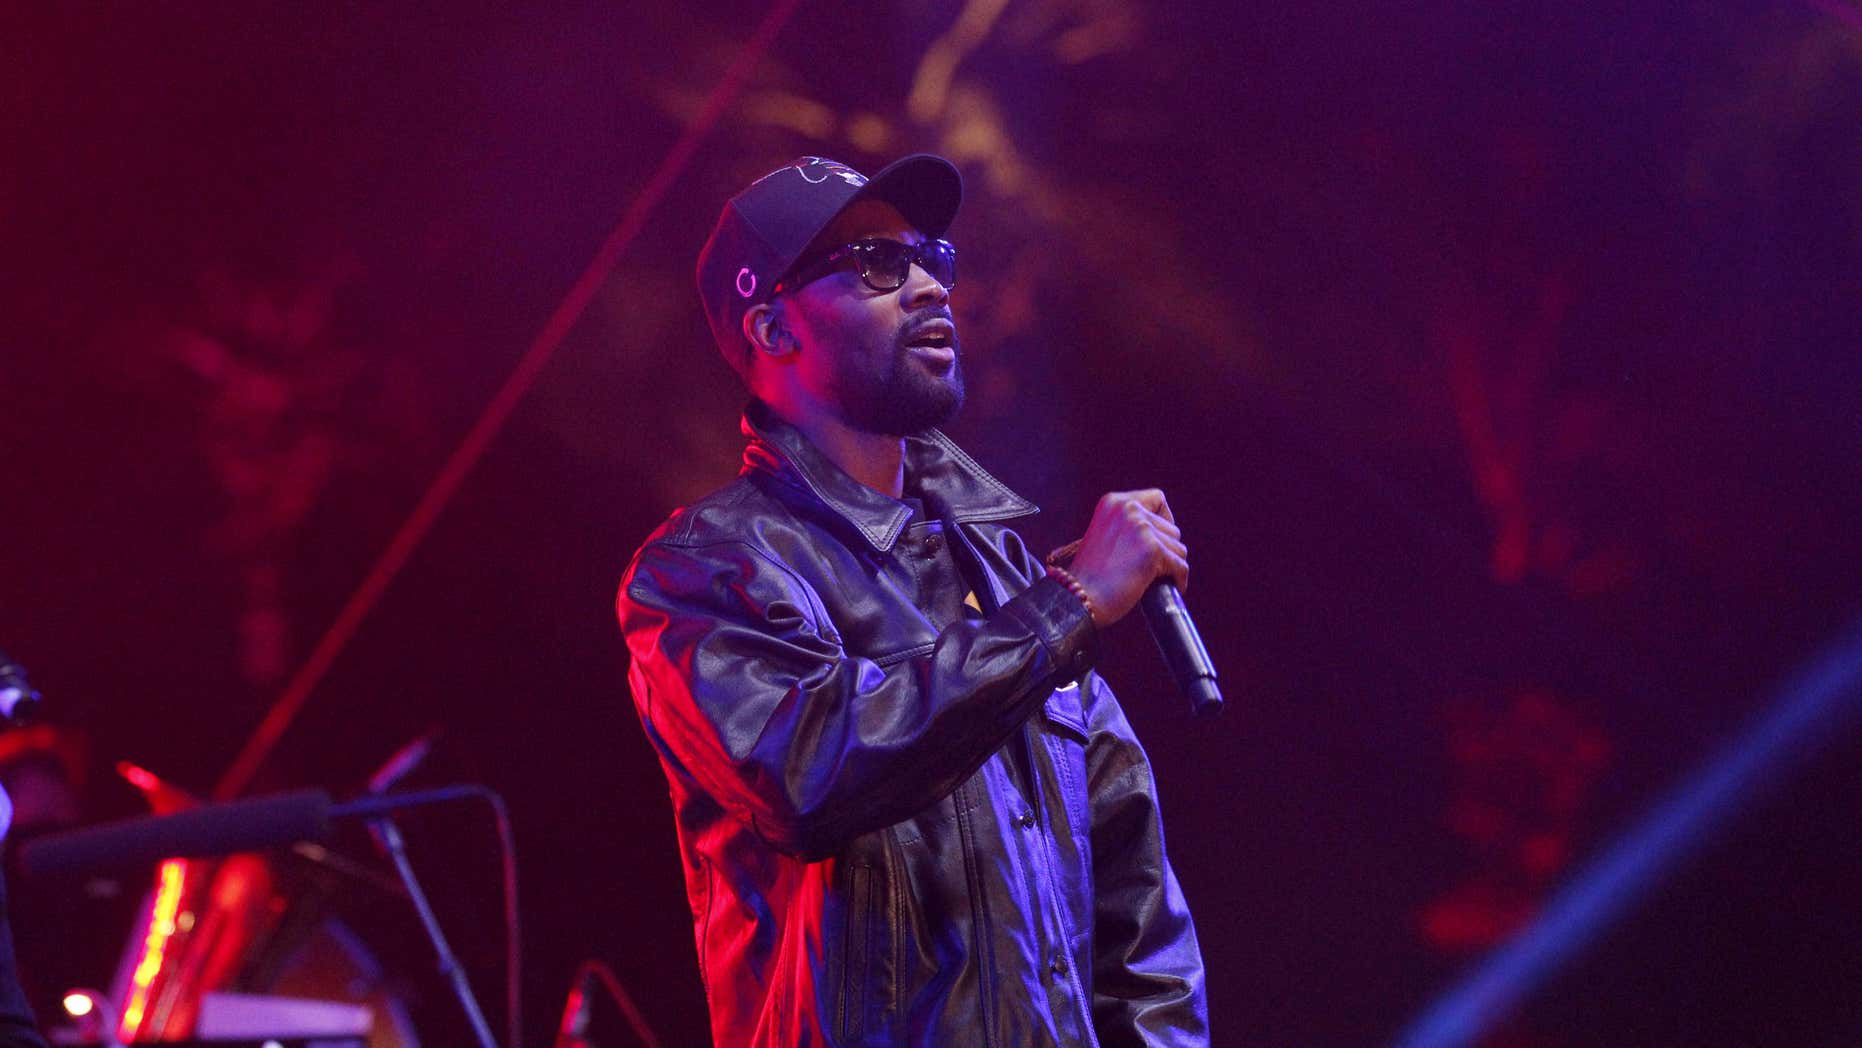 April 14, 2013: RZA of the Wu-Tang Clan performs during the Coachella Music Festival in Indio, California.